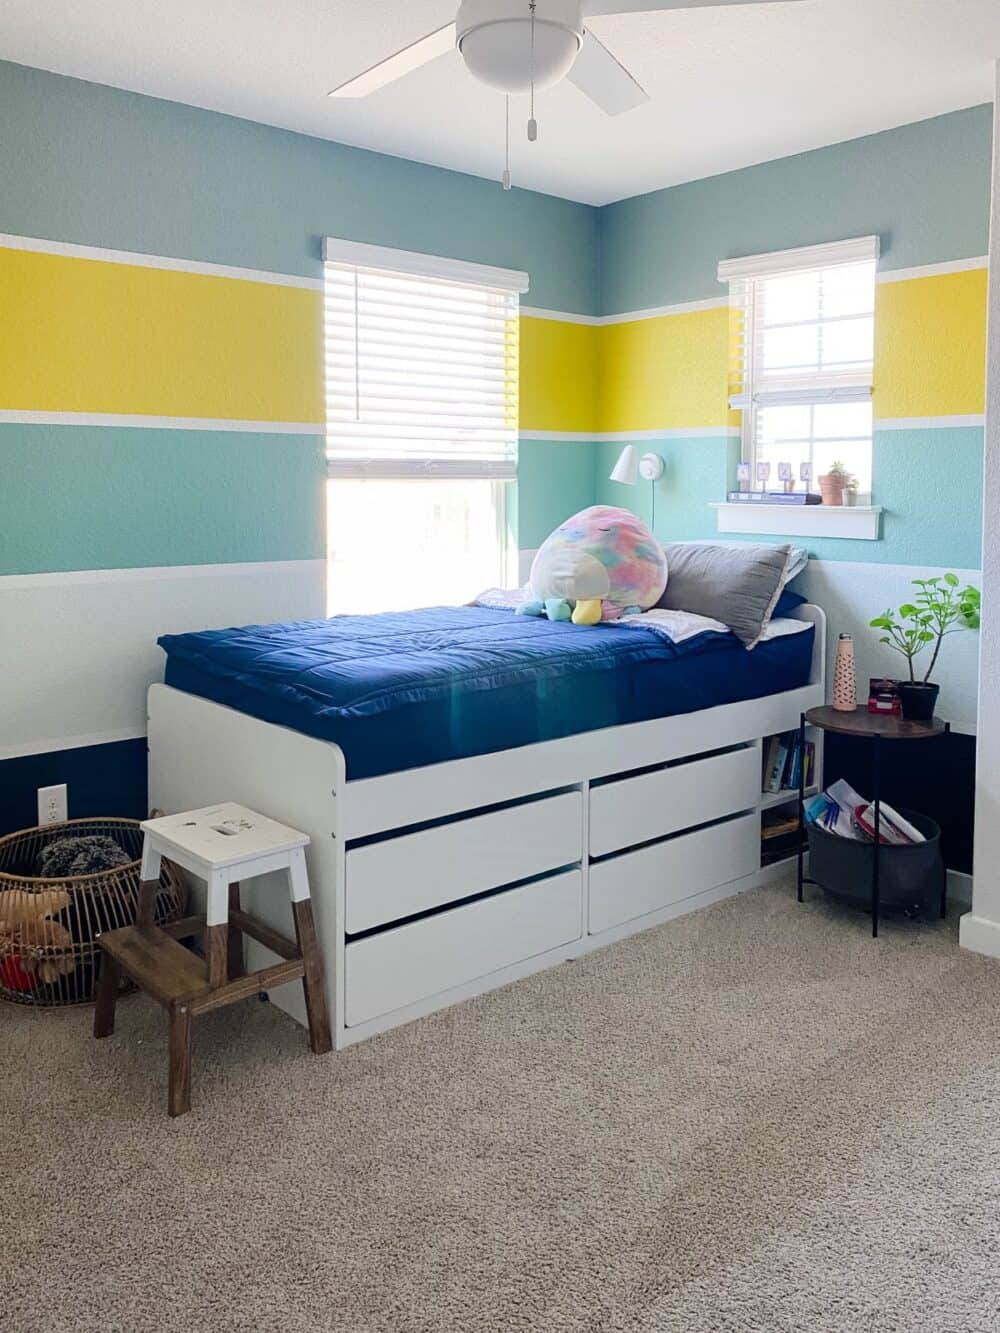 A bright and colorful kid bedroom with striped walls